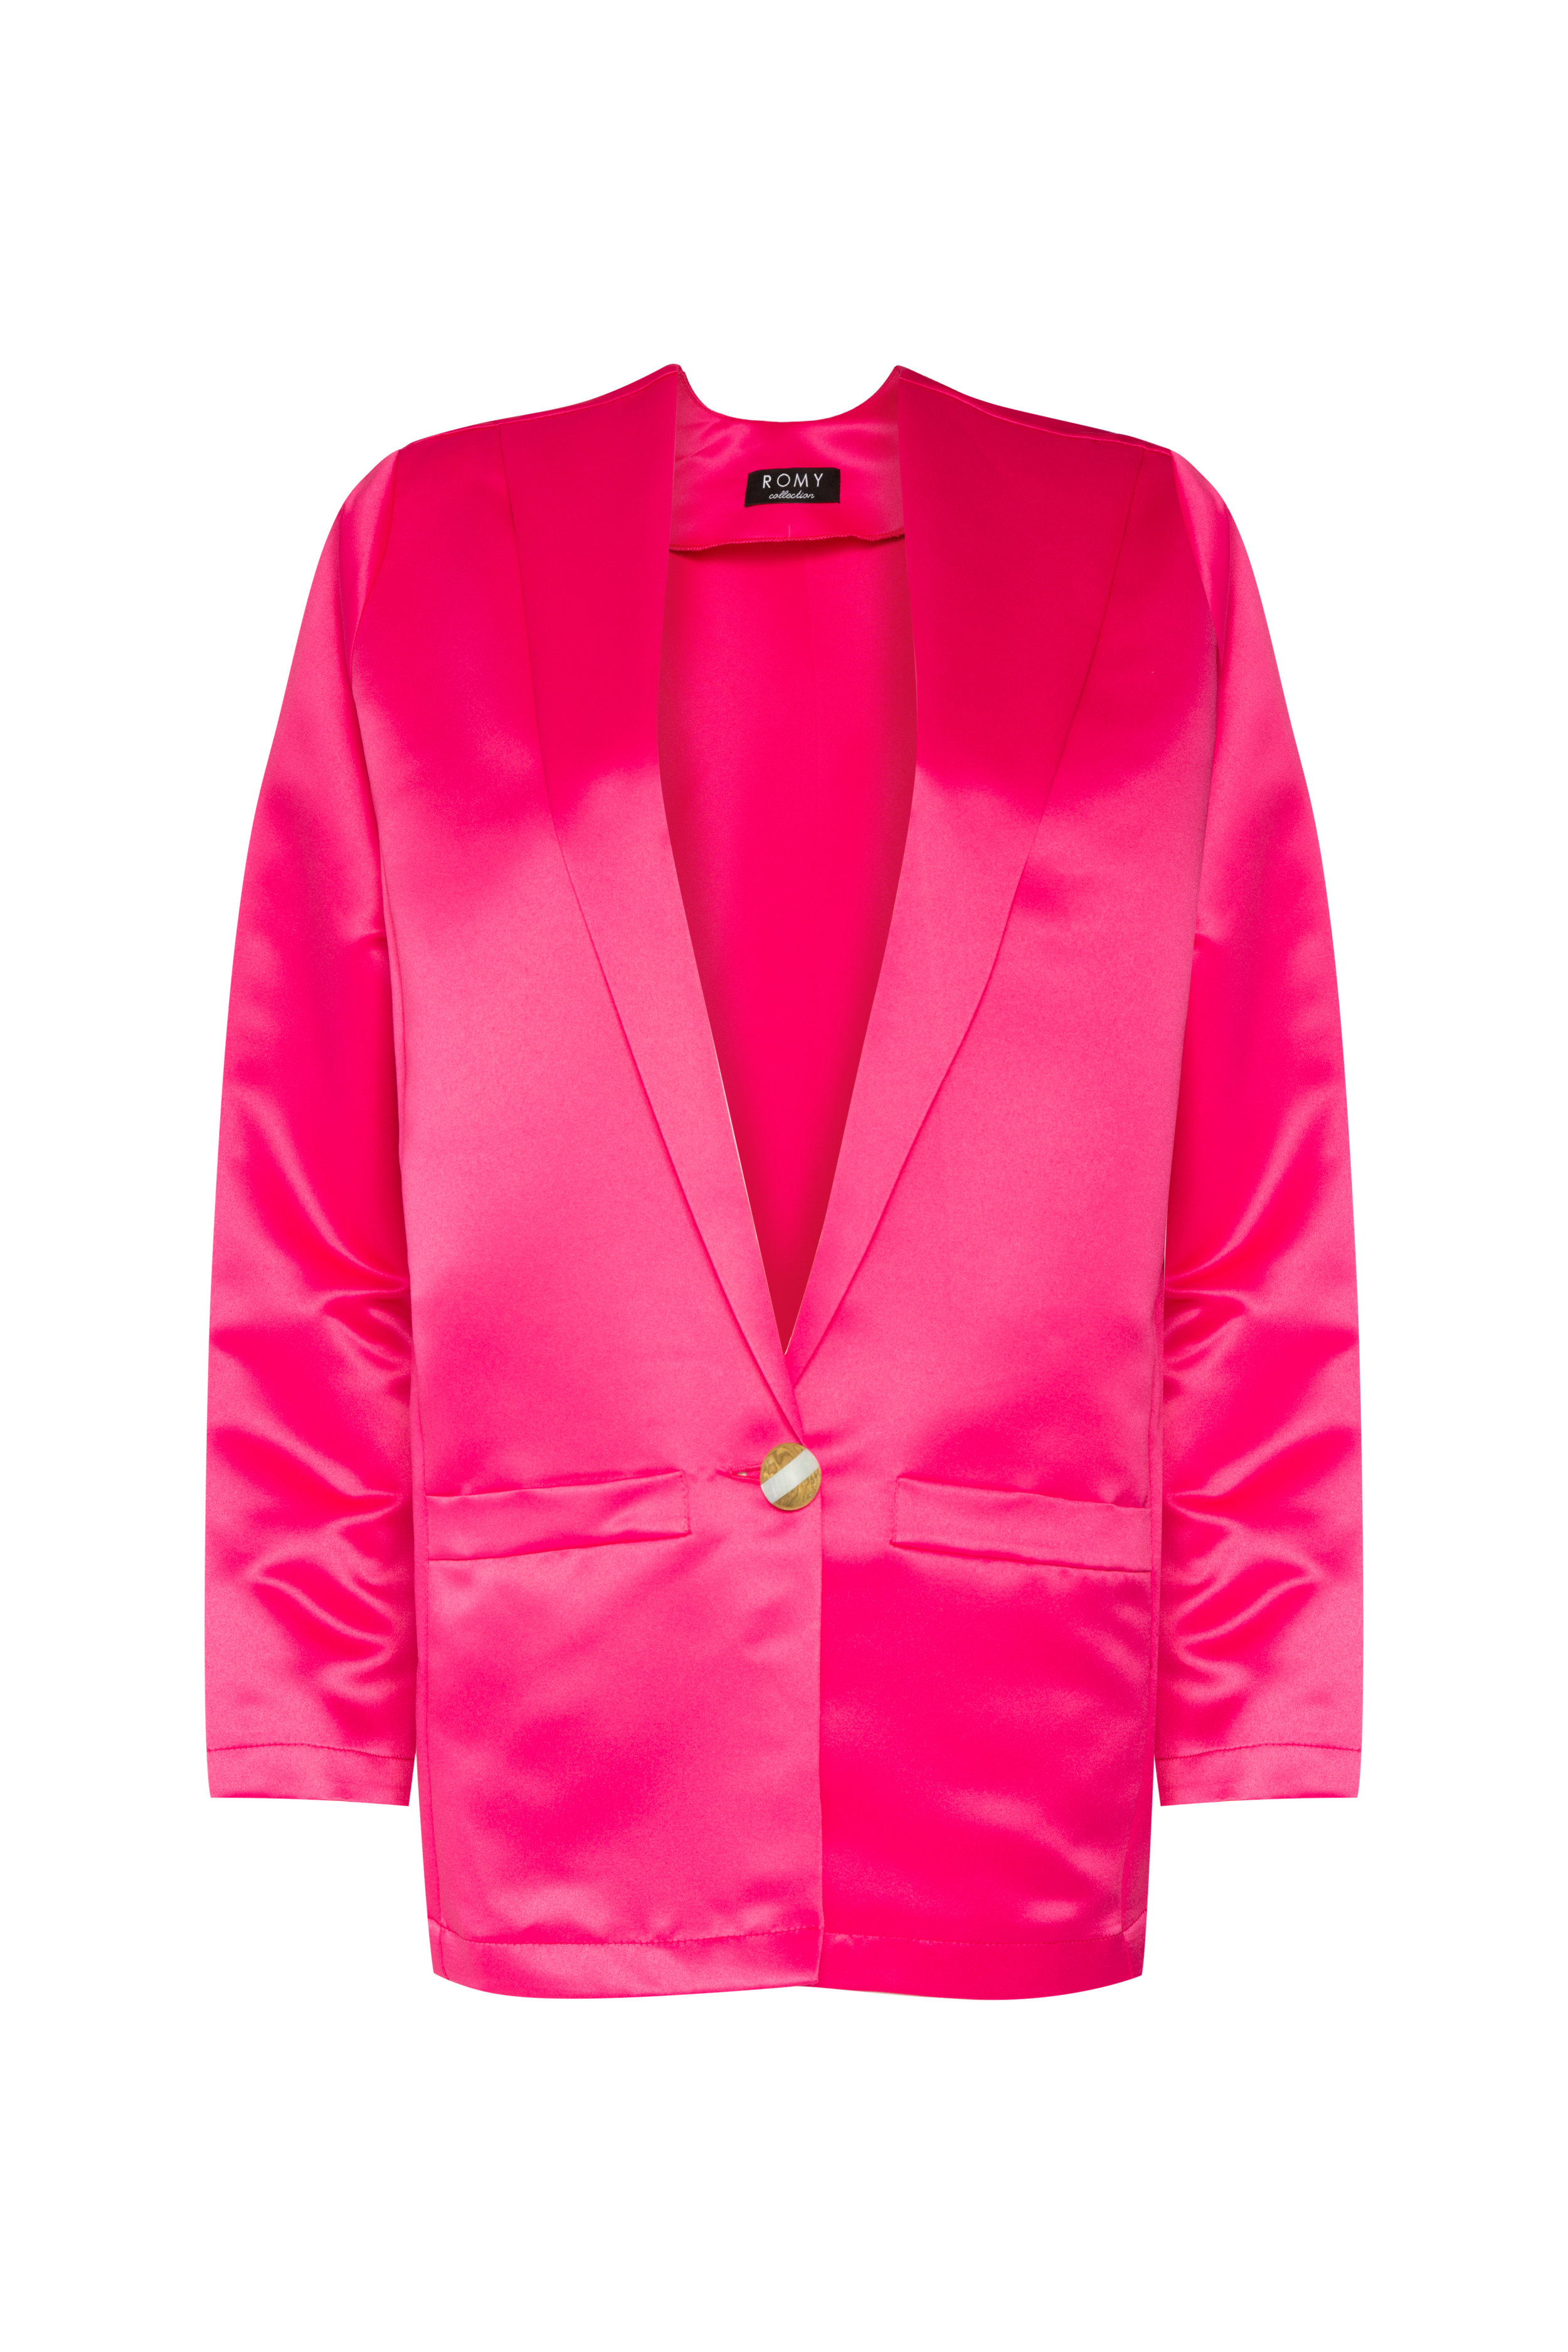 COMPLETE THE LOOK - Catiane Jacket USD 200